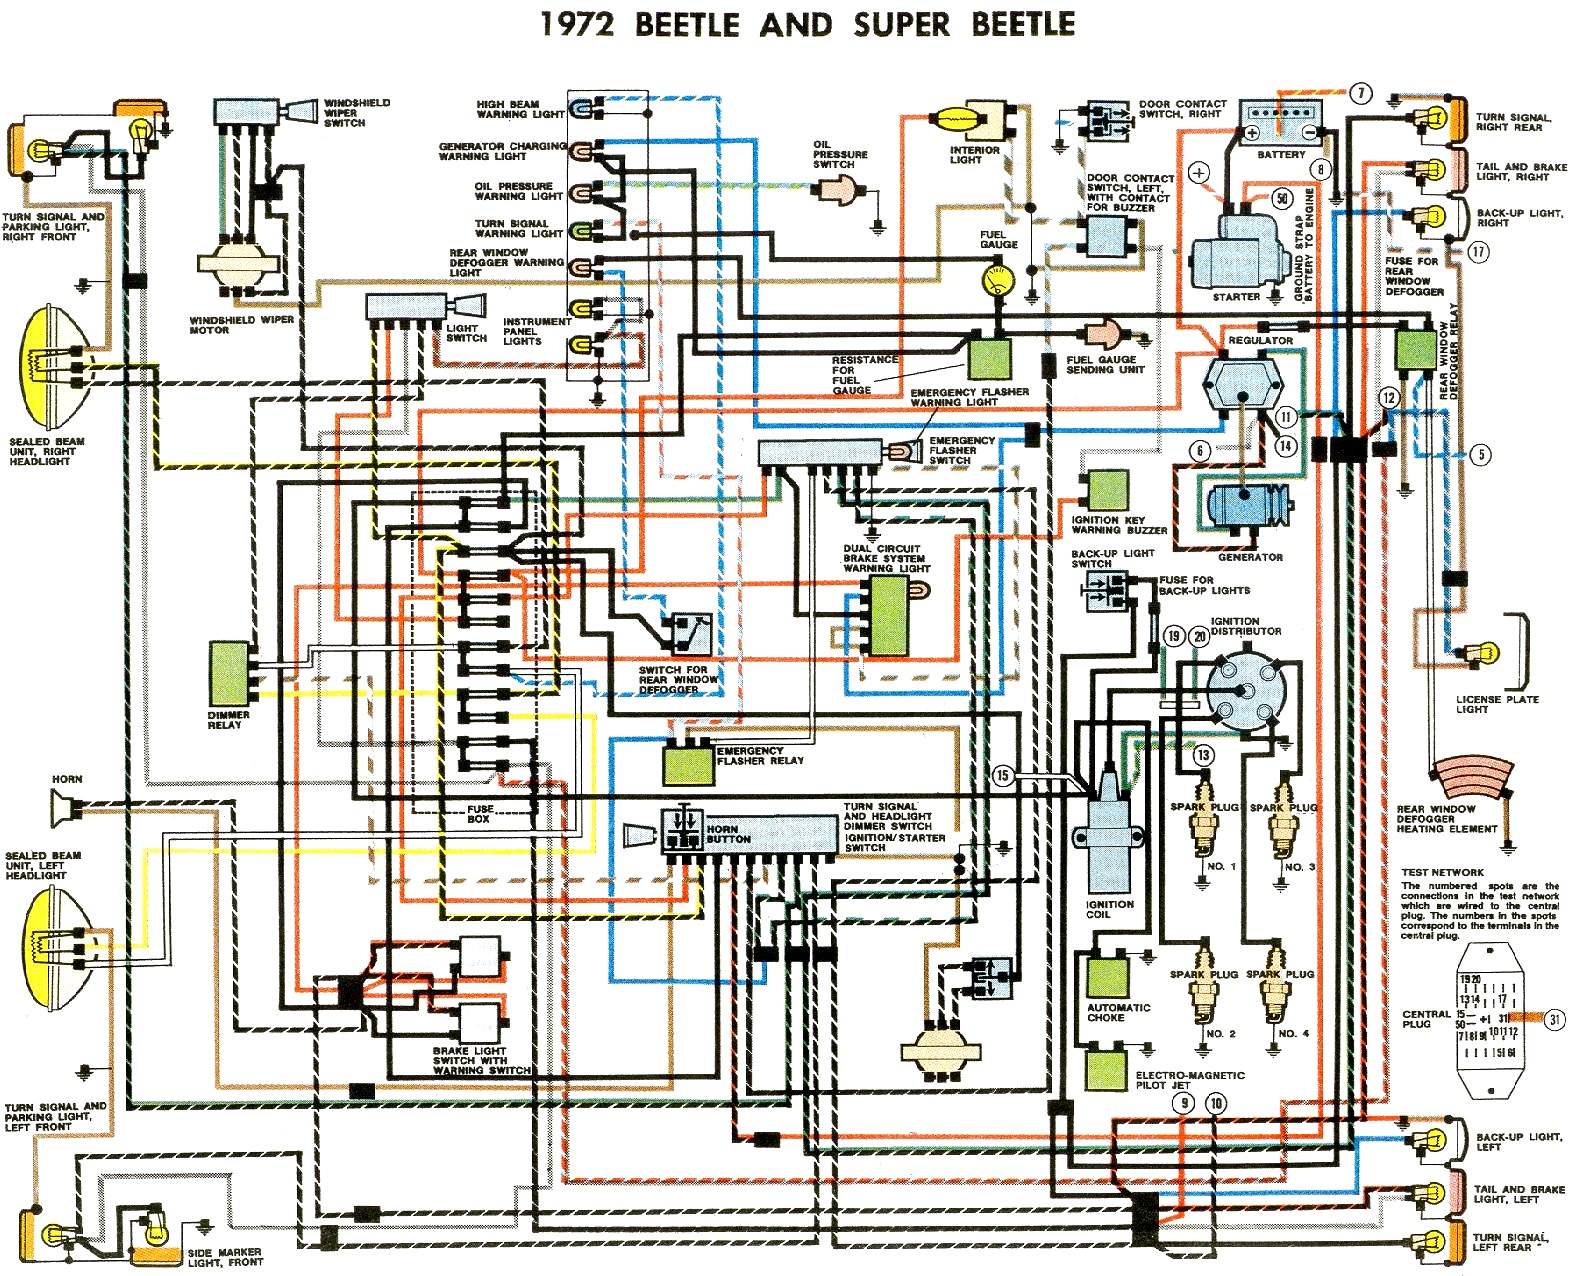 bug_72 1972 beetle wiring diagram thegoldenbug com 1971 vw beetle wiring diagram at aneh.co